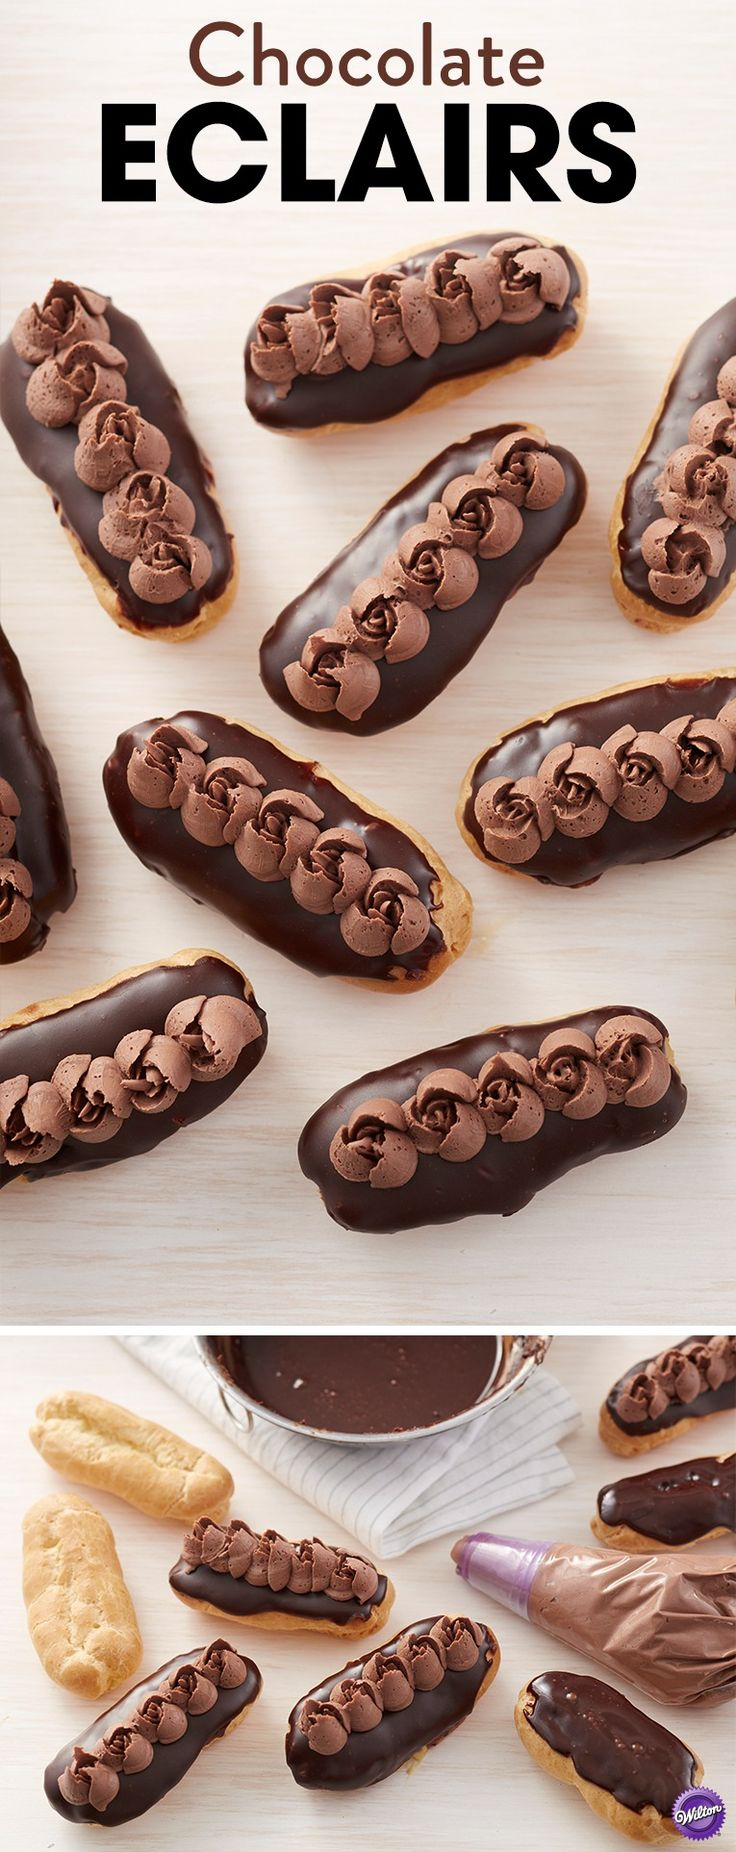 This Chocolate Eclairs Recipe is oooh-la-lovely! Made using the Easy Blooms Tip Set, these chocolate eclairs are a sweet and pretty dessert for parties, birthdays, holidays and occasions. Use your favorite vanilla pudding to fill these eclairs and top them with beautiful chocolate roses. It's like a little taste of Paris any time of year!